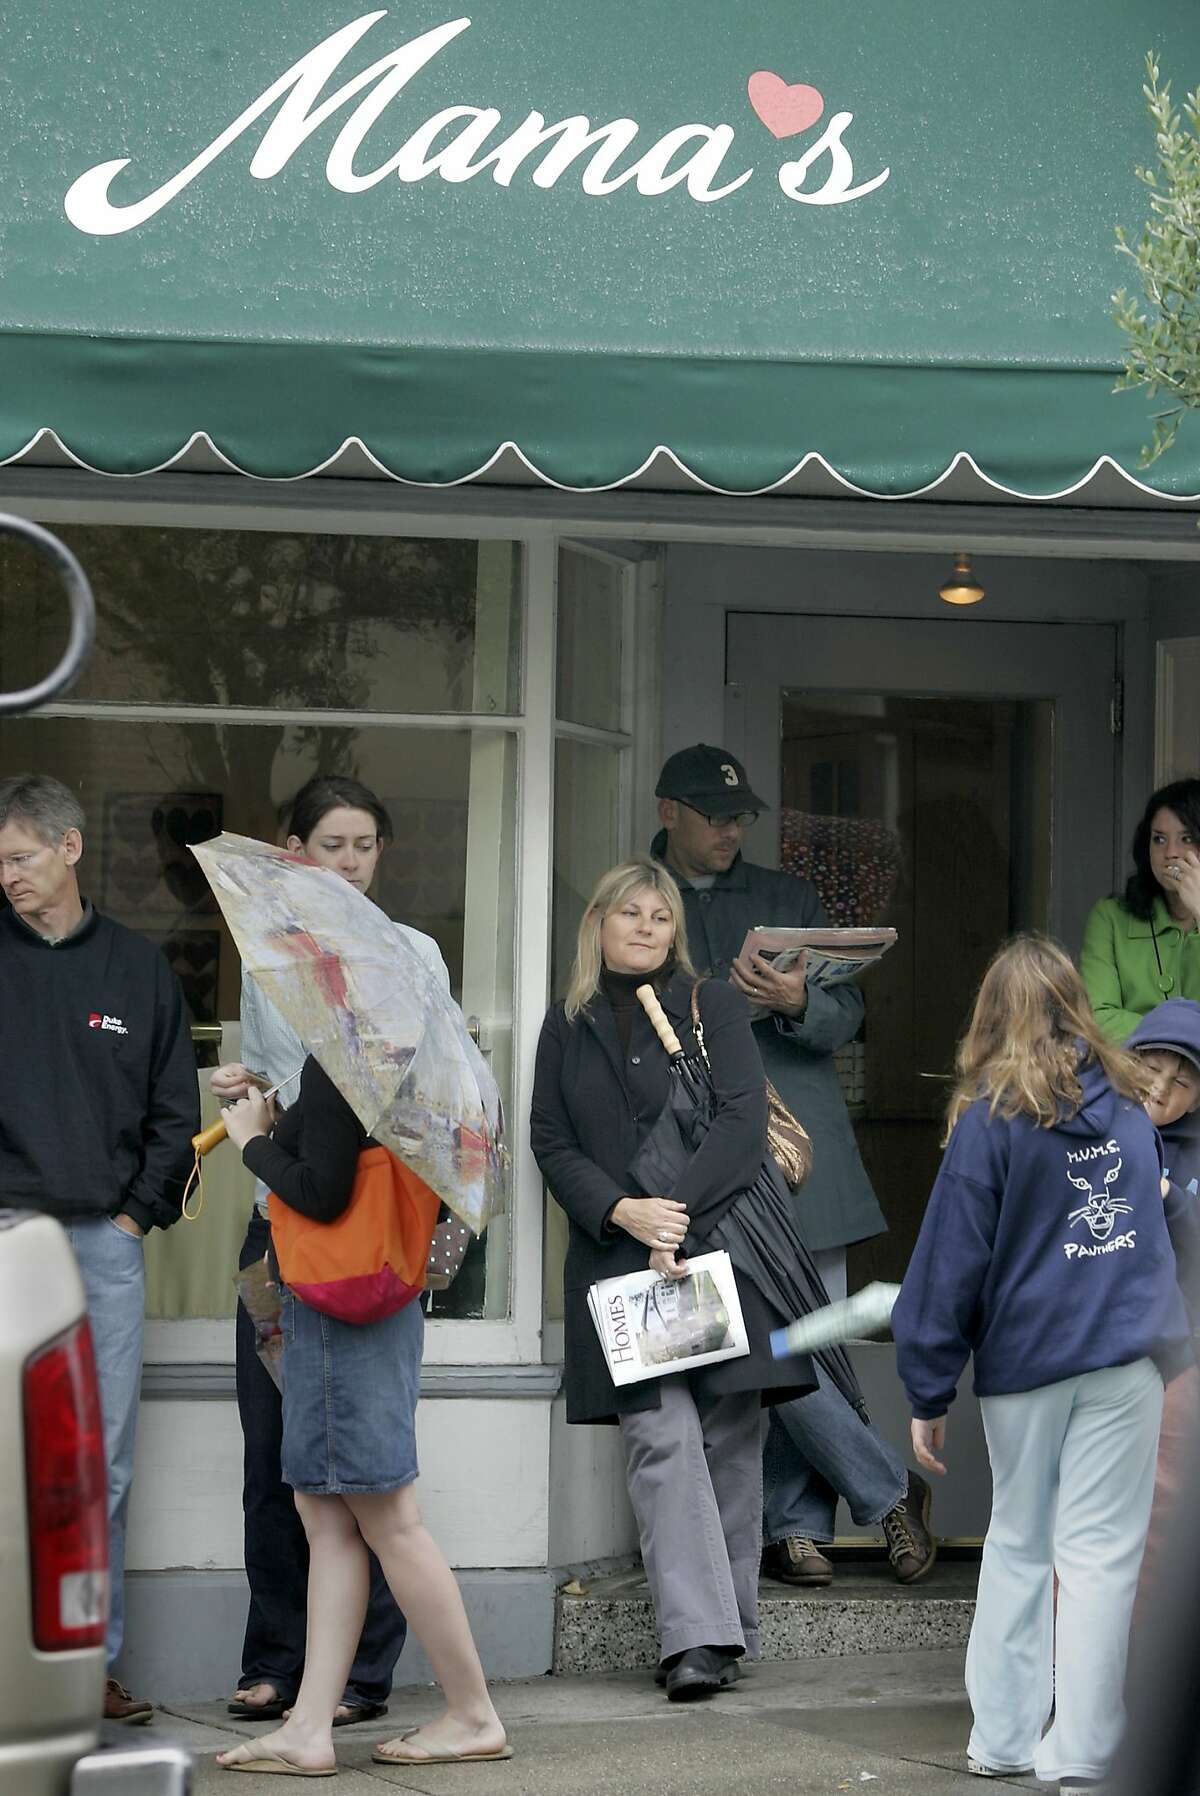 mothers579_ward.jpg What better place to celebrate Mother's Day than at Mama's in North Beach. Ruth Rosenfield, center blonde hair, watched her two children playing as she and others waited patiently to get inside. On a very wet and cold Mother's Day, most would not let the bad weather dampen their plans. From North Beach to the Mission district, families and mother's celebrated the special day. Brant Ward 5/9/05